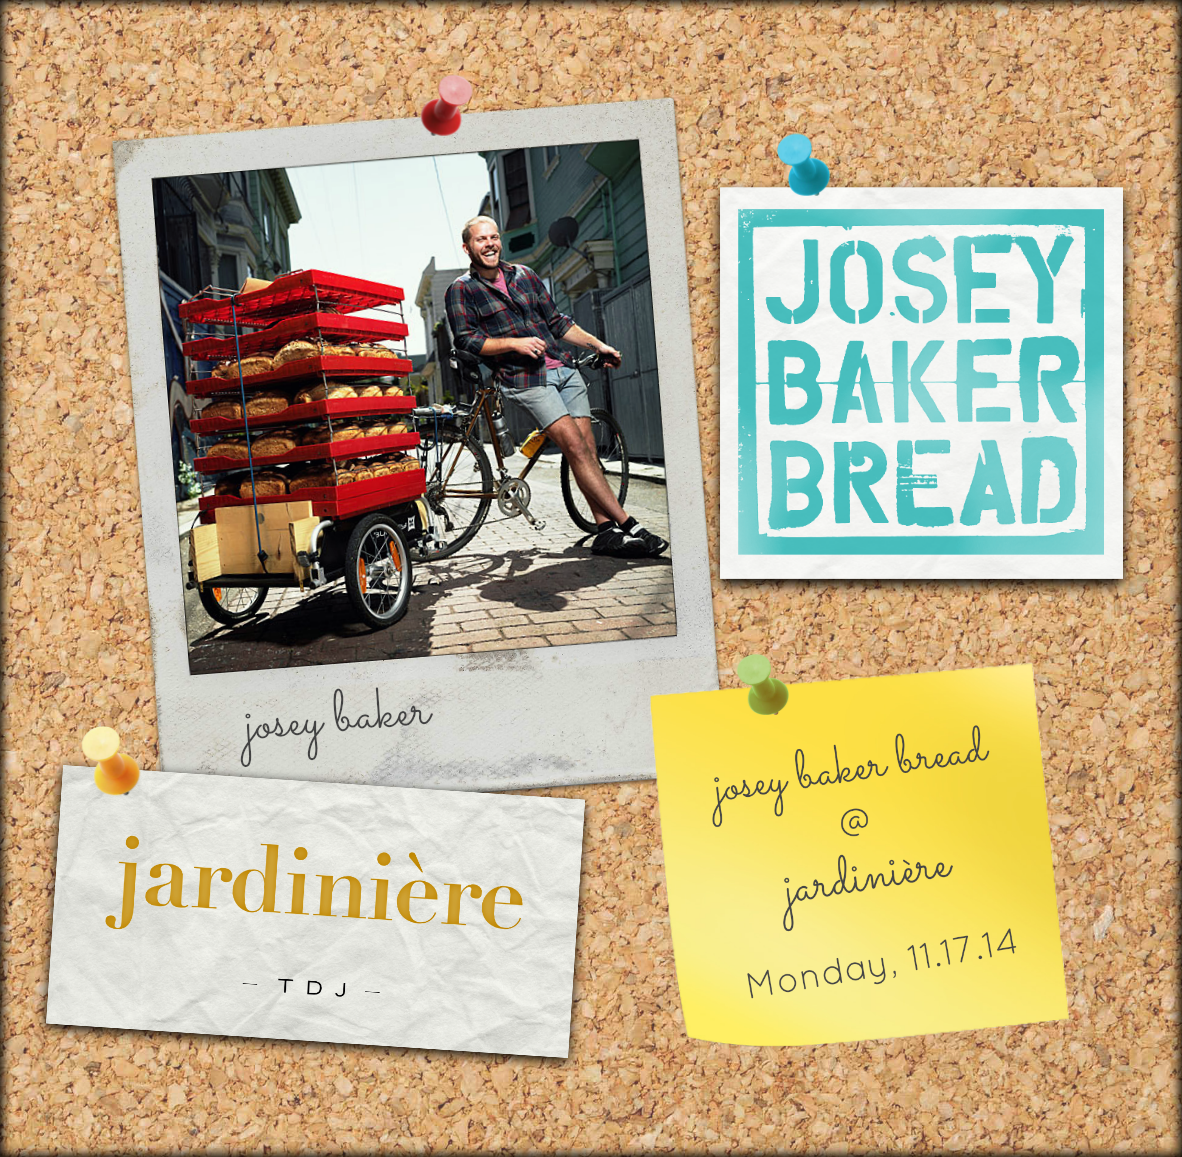 Josey Baker collage for Jardiniere